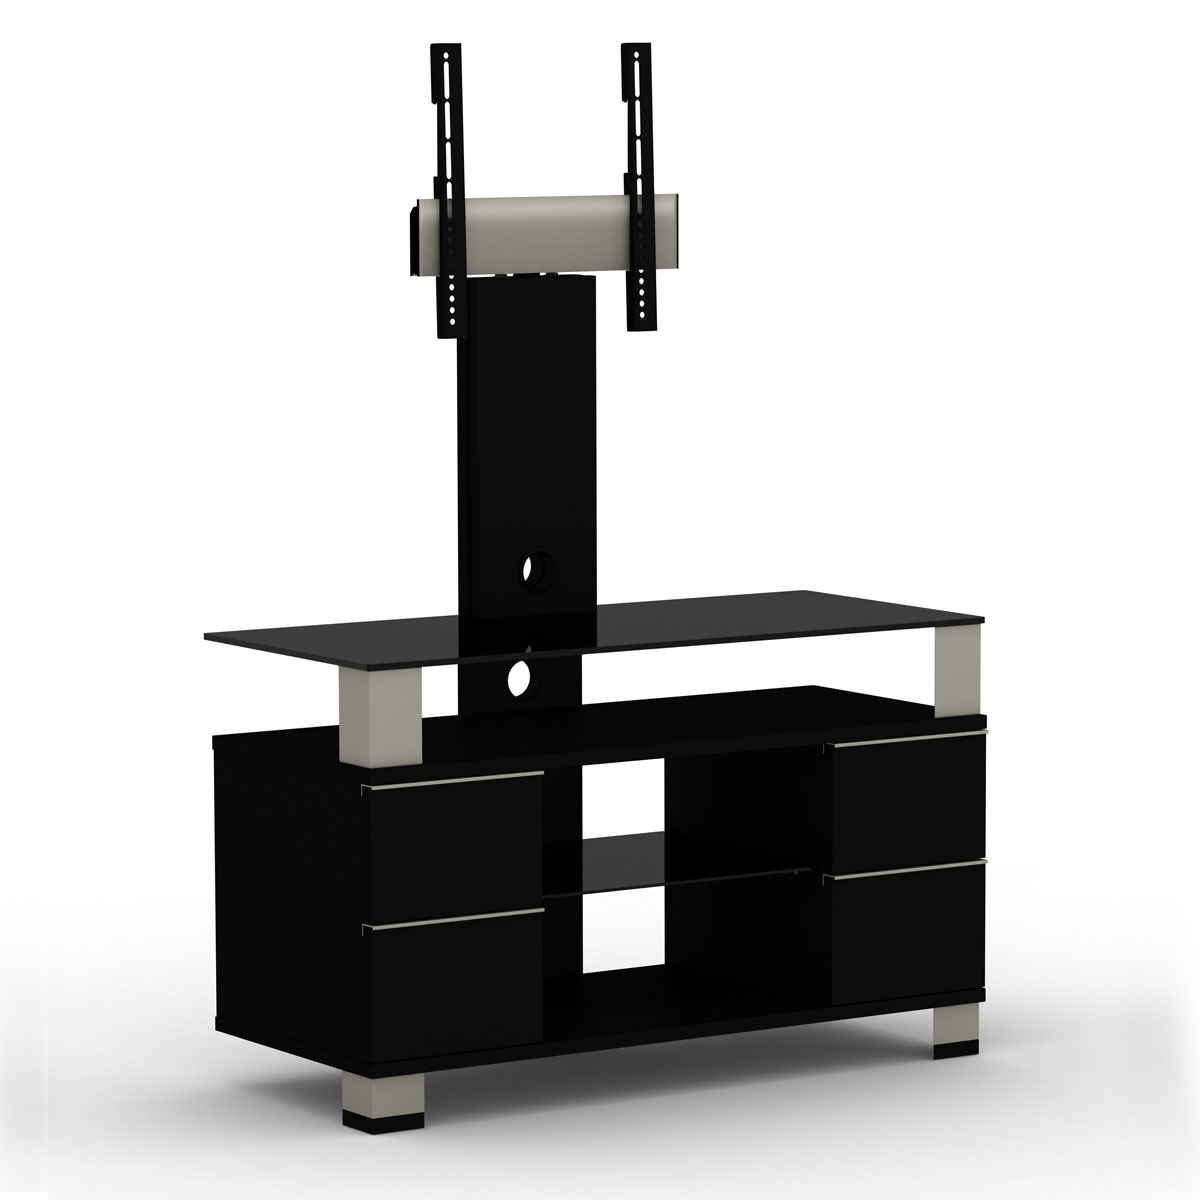 elmob pone pn 095 01f noir meuble tv elmob sur ldlc. Black Bedroom Furniture Sets. Home Design Ideas